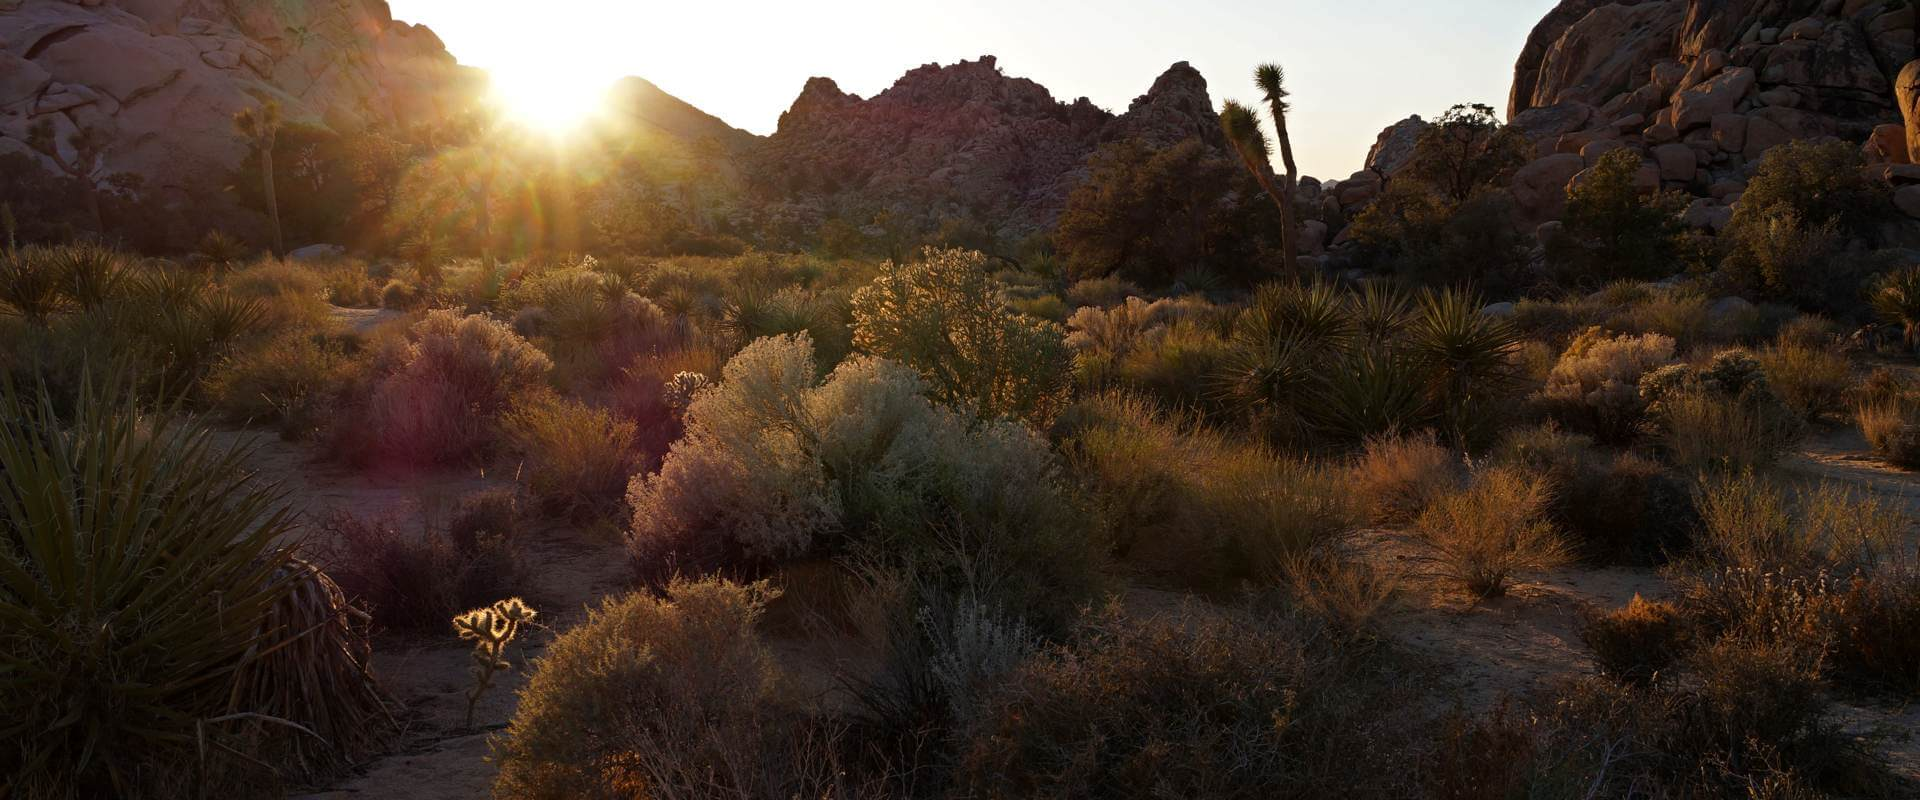 Ein kleines Juwel: Das Hidden Valley im Joshua Tree National Park